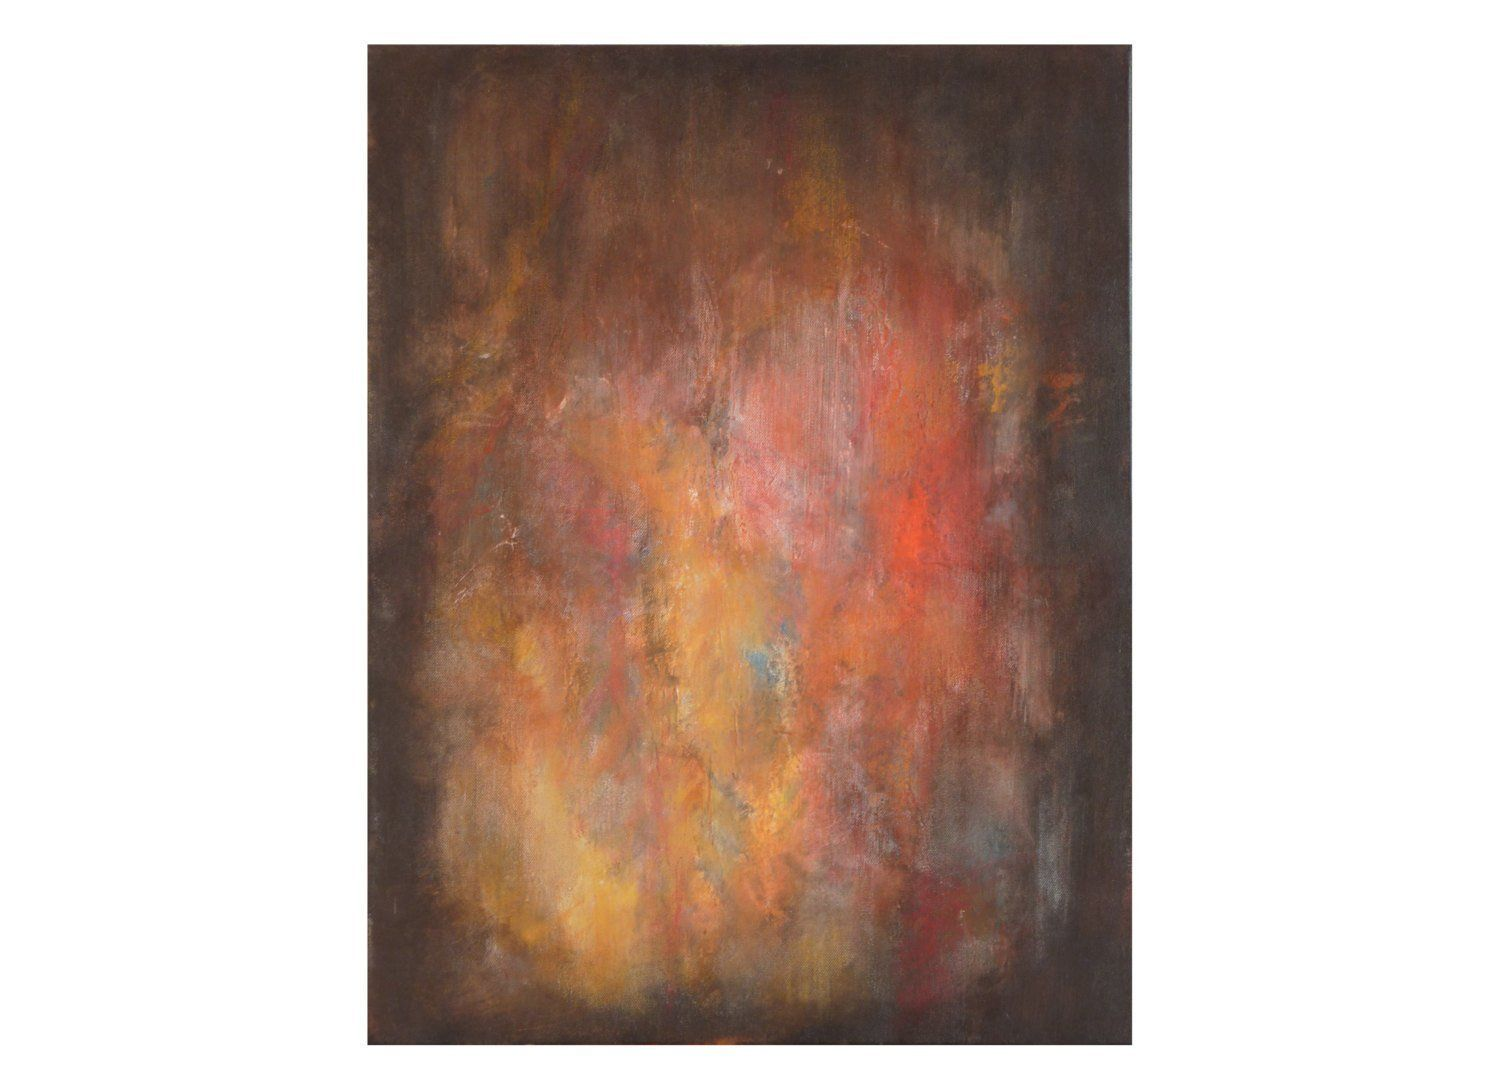 Tableau Moderne Vertical Tableau Abstrait Vertical Orange Jaune Rouge Noir Original Moderne